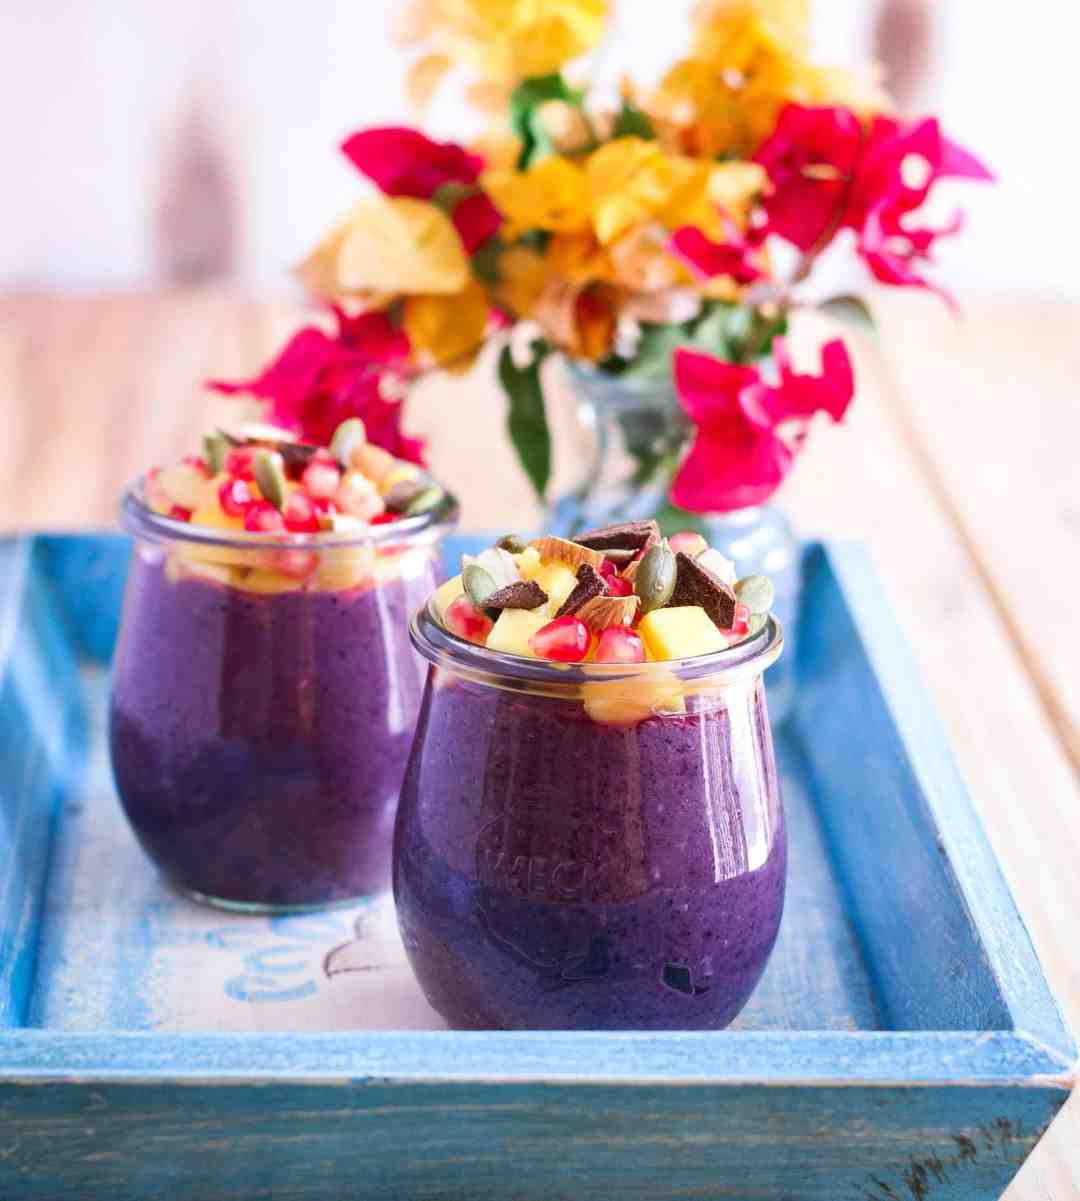 Blueberry Overnight Oats healthy delicious easy breakfast vegetarian Mother's Day